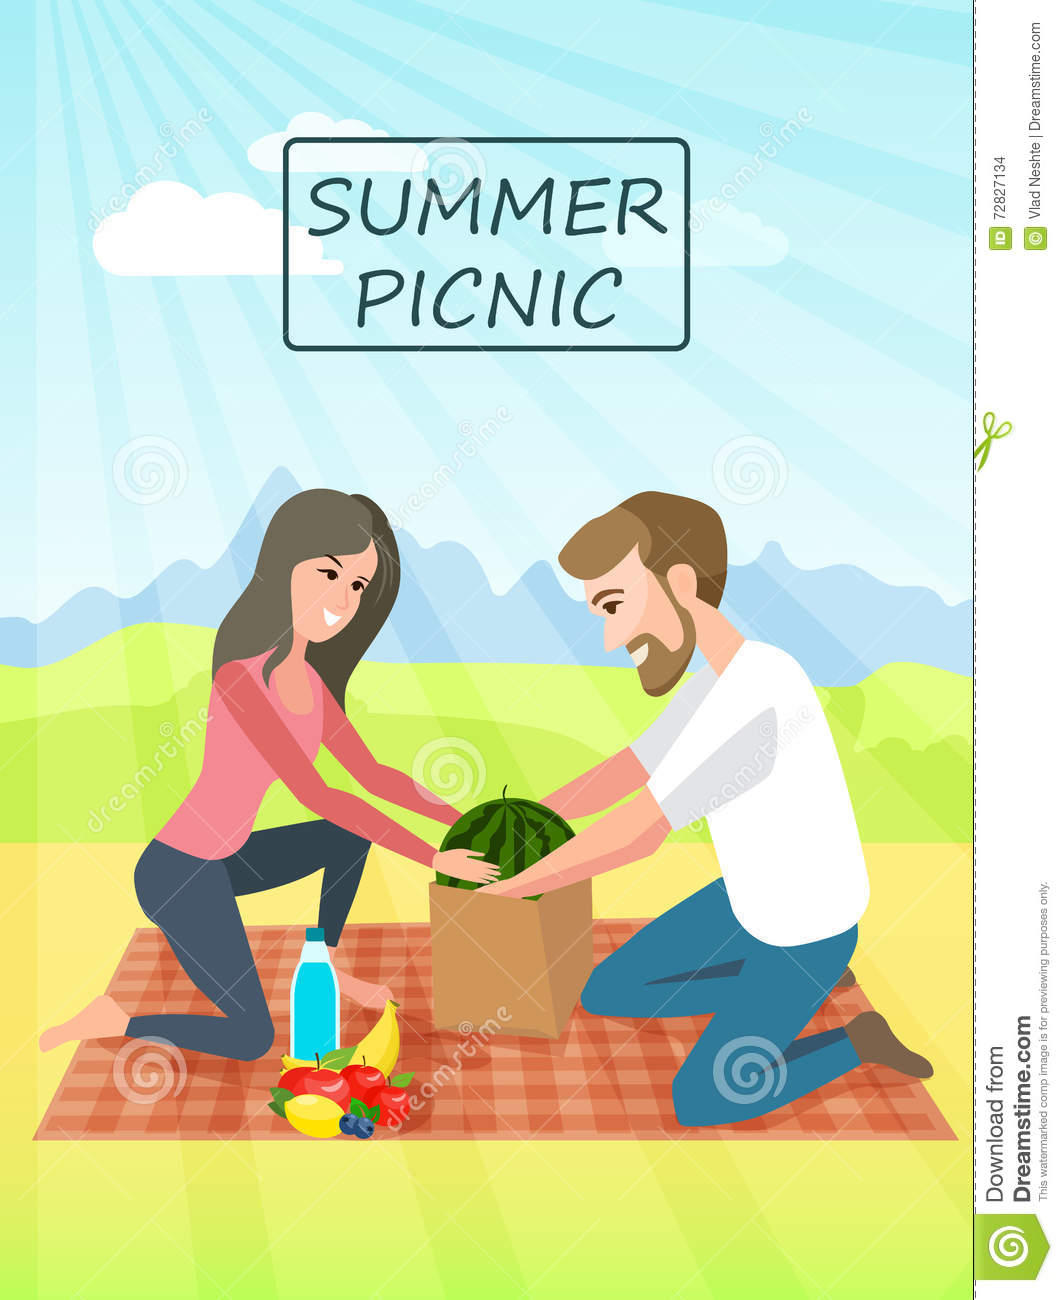 Family vacation, picnic, nature: a selection of sites